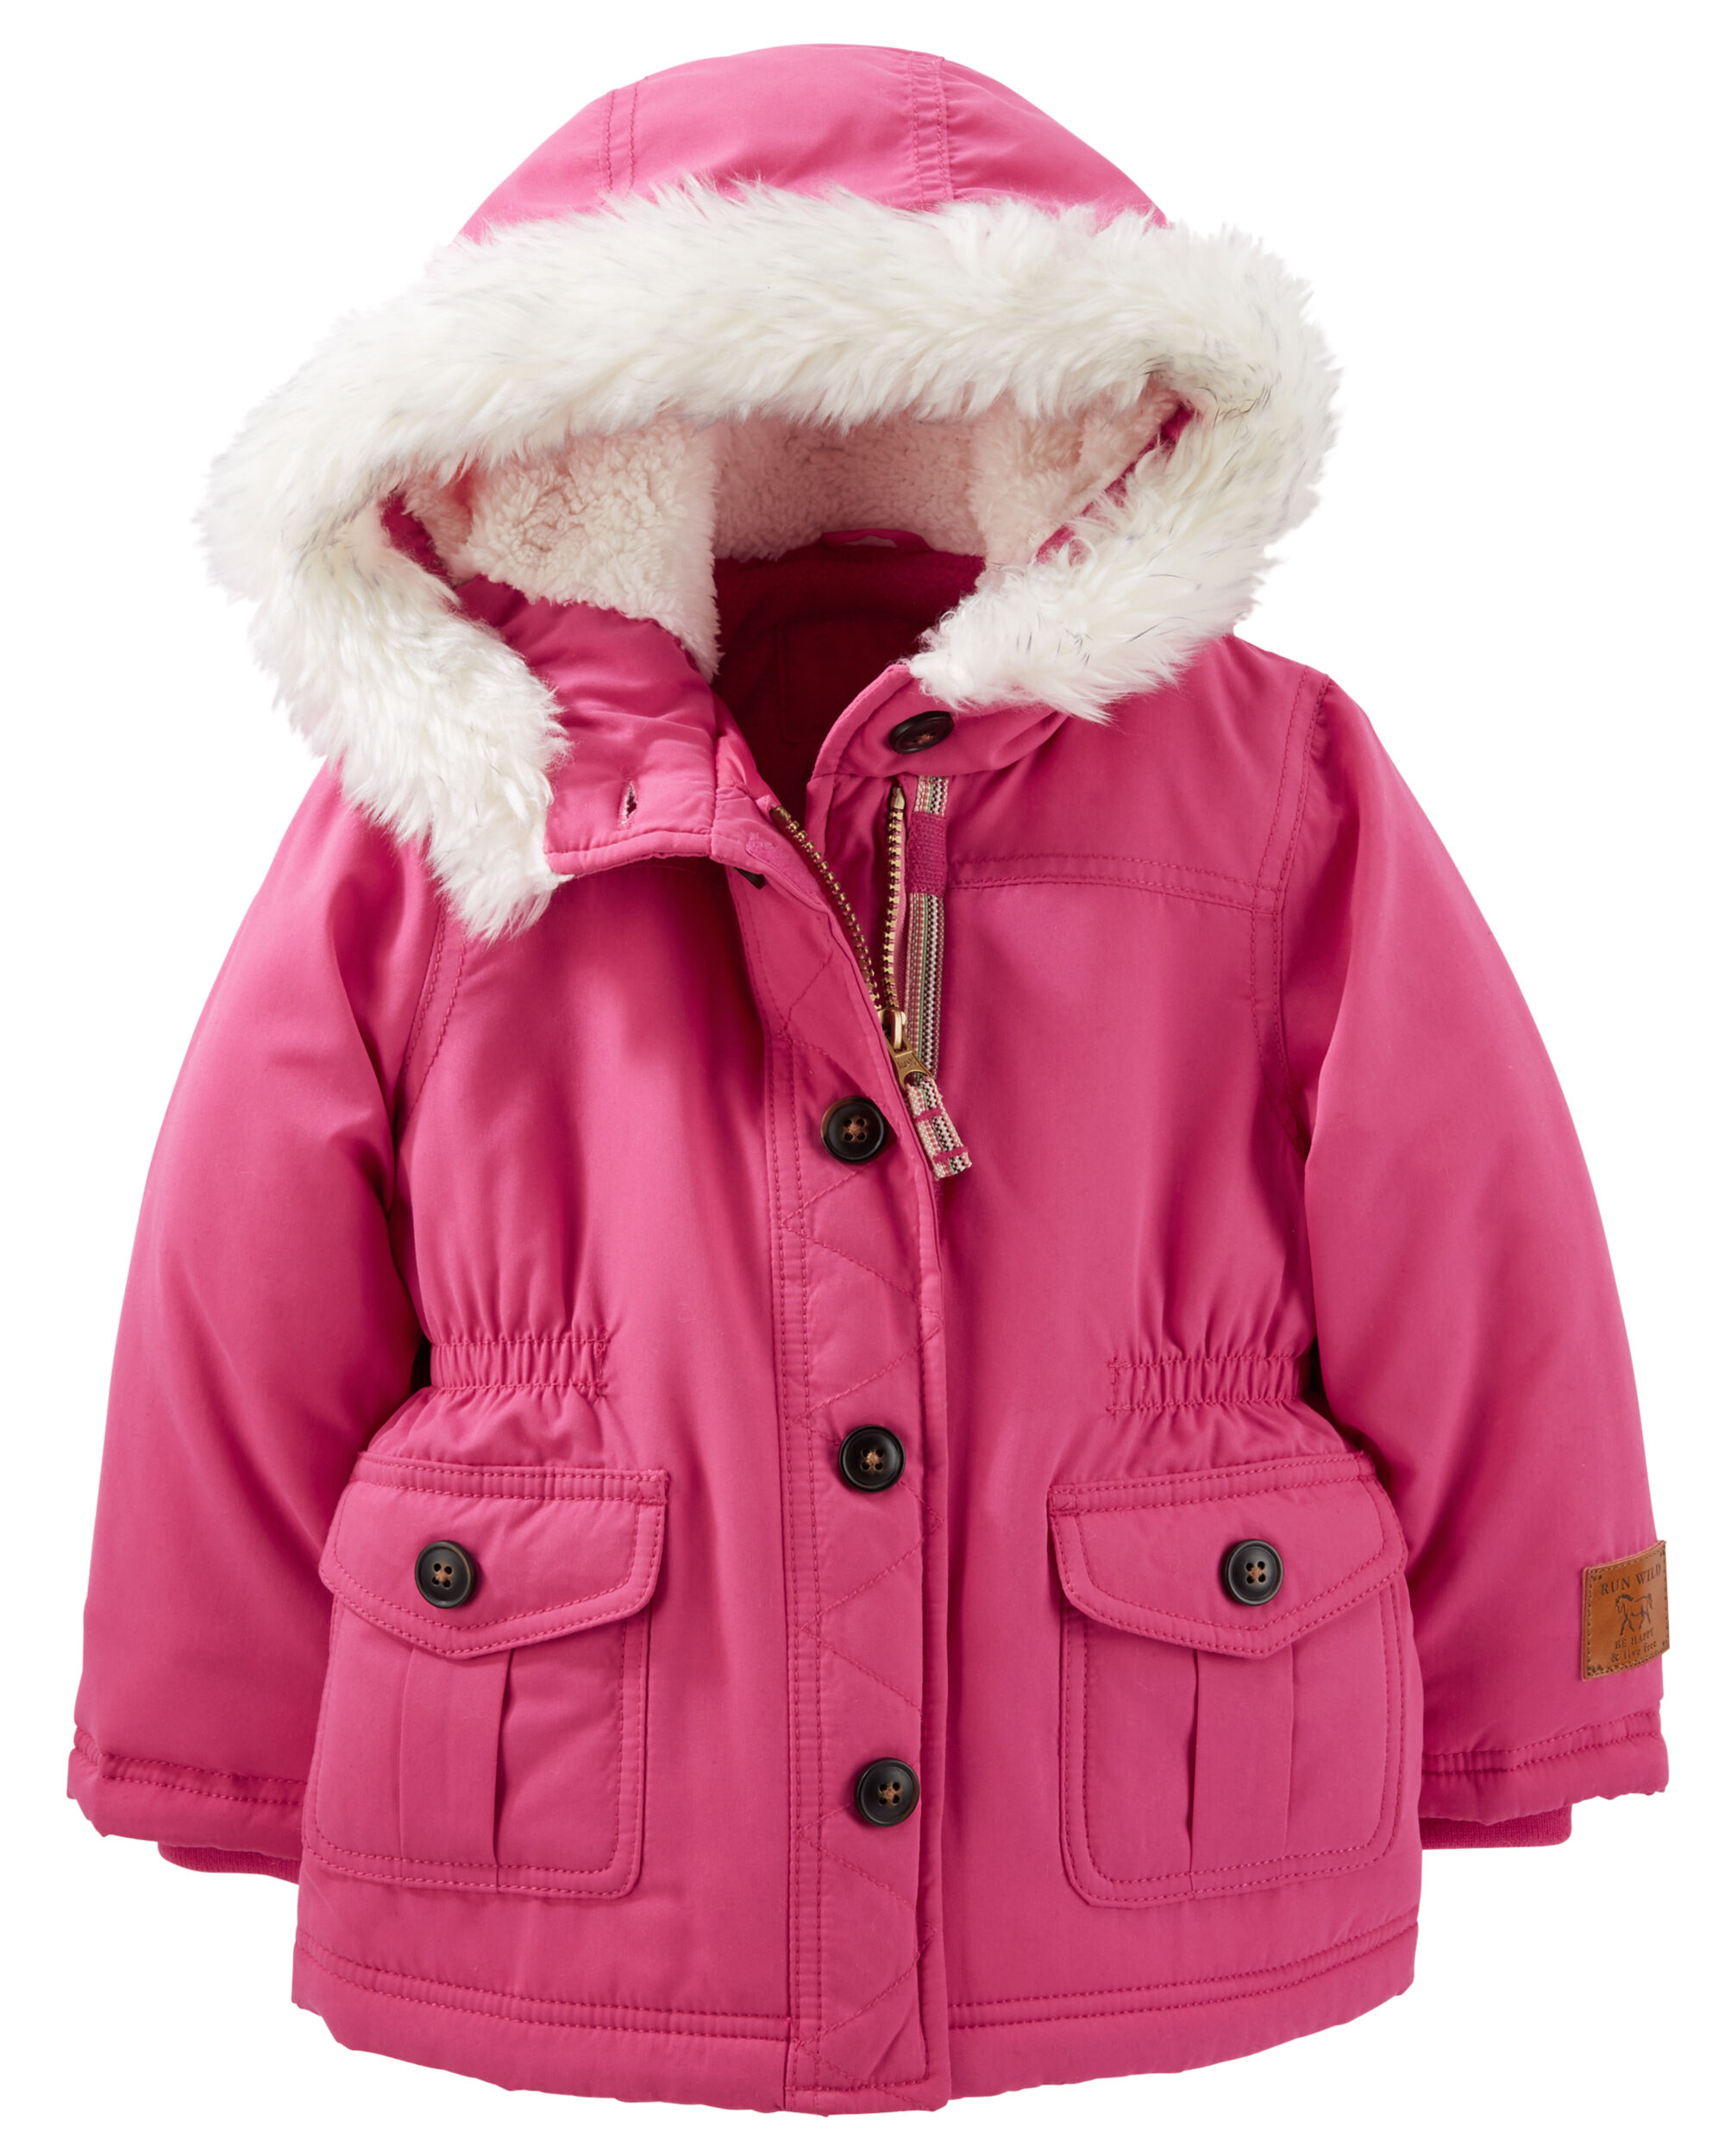 Free shipping on baby girl coats, jackets & outerwear at oraplanrans.tk Shop the latest styles from the best brands. Totally free shipping & returns.